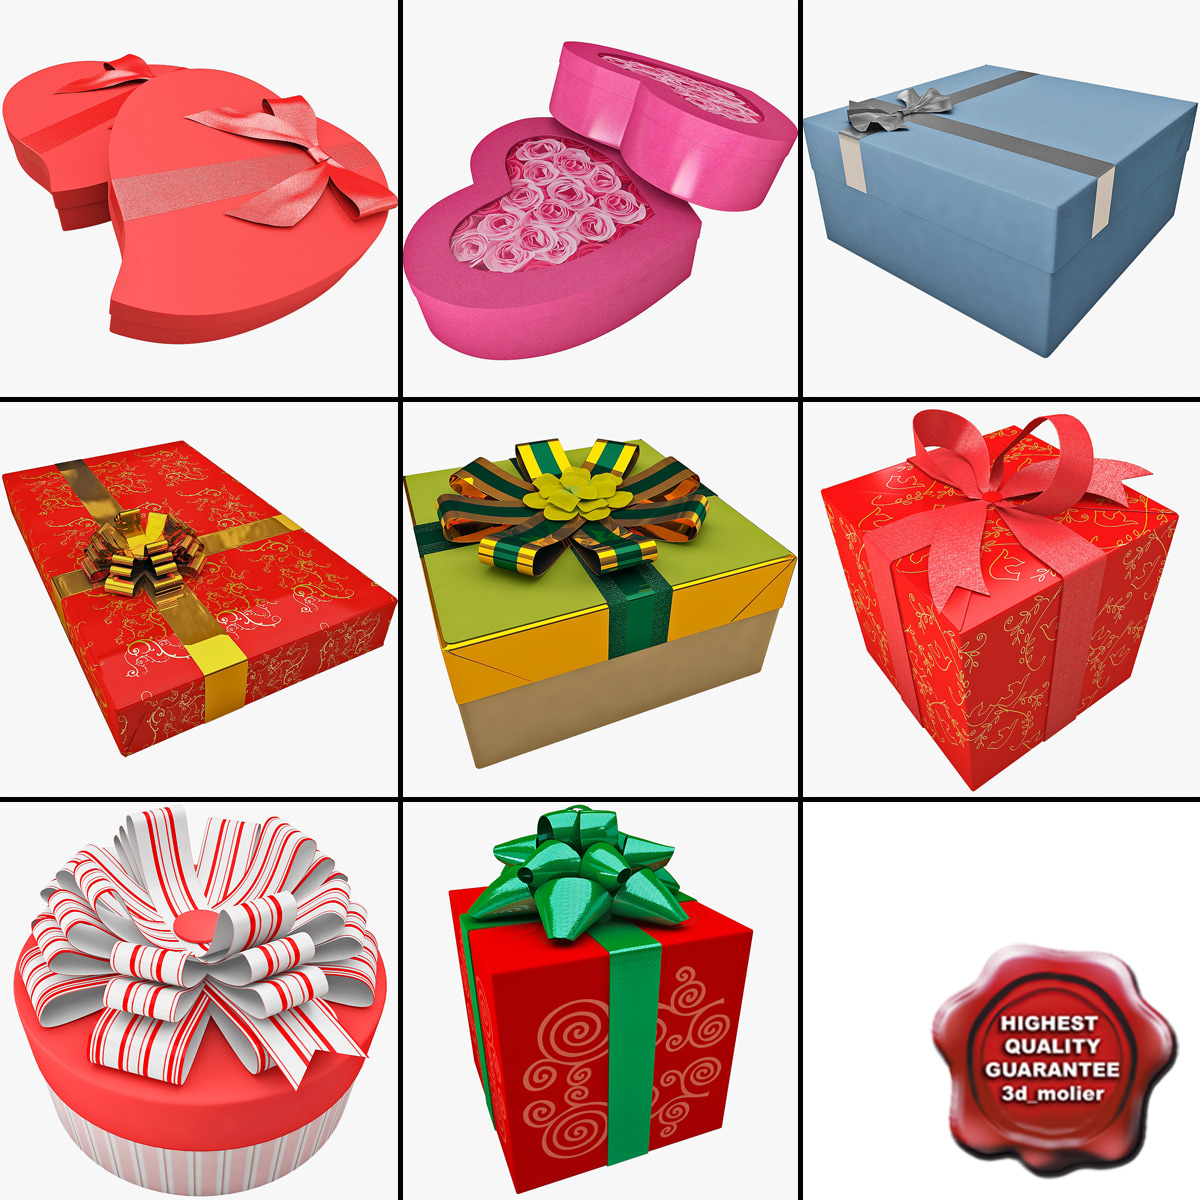 Gift_Boxes_Collection_v3_000.jpg